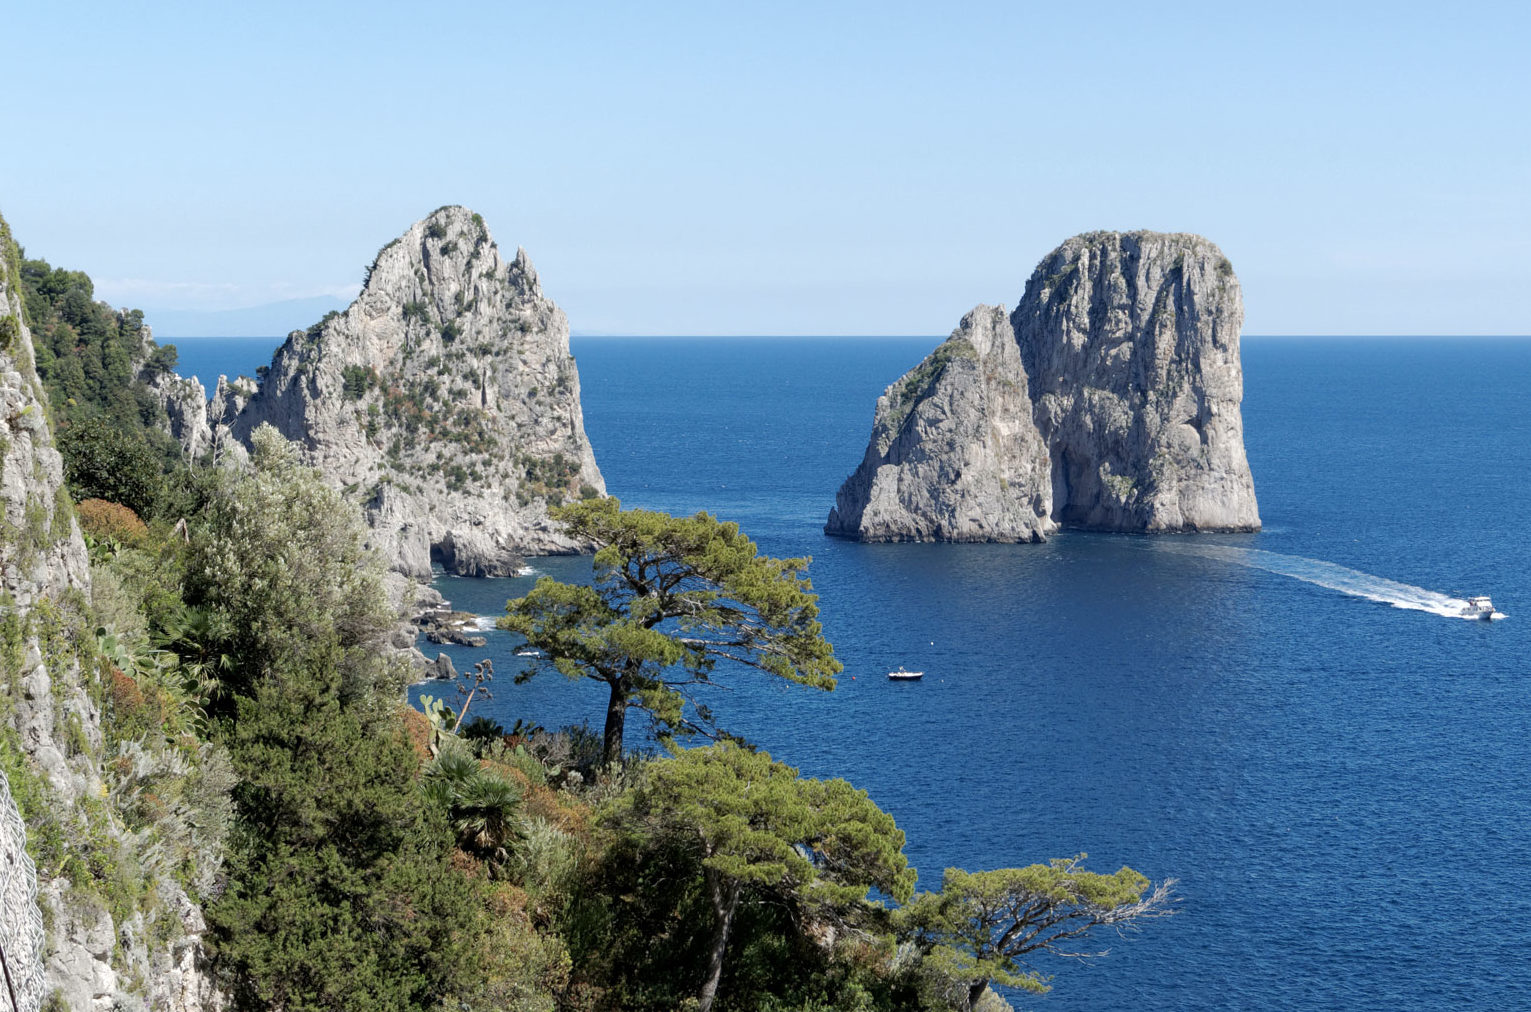 Romantic, seductive and irresistible: the Grand Tour of Capri!